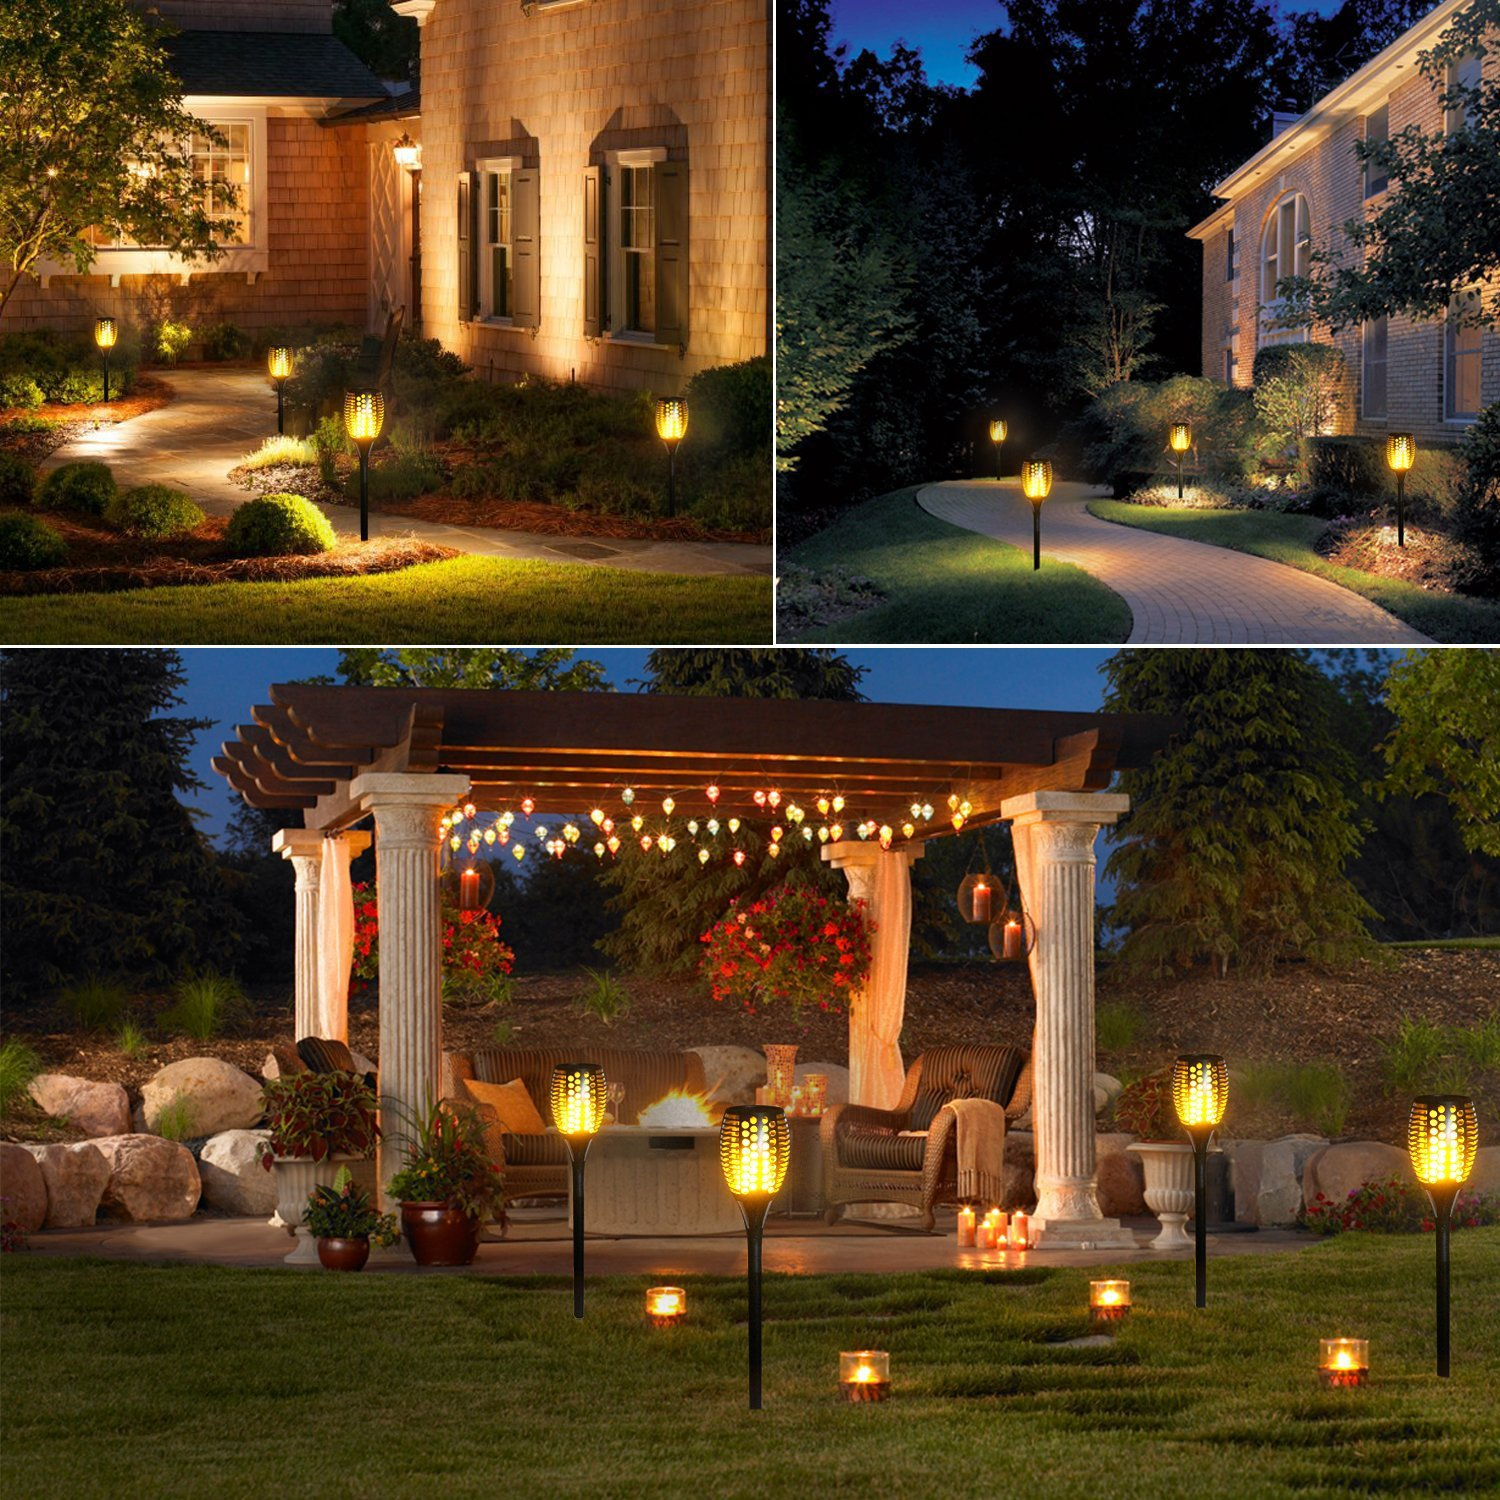 Led Solar Flame Flickering Lawn Lamps Led Torch Light